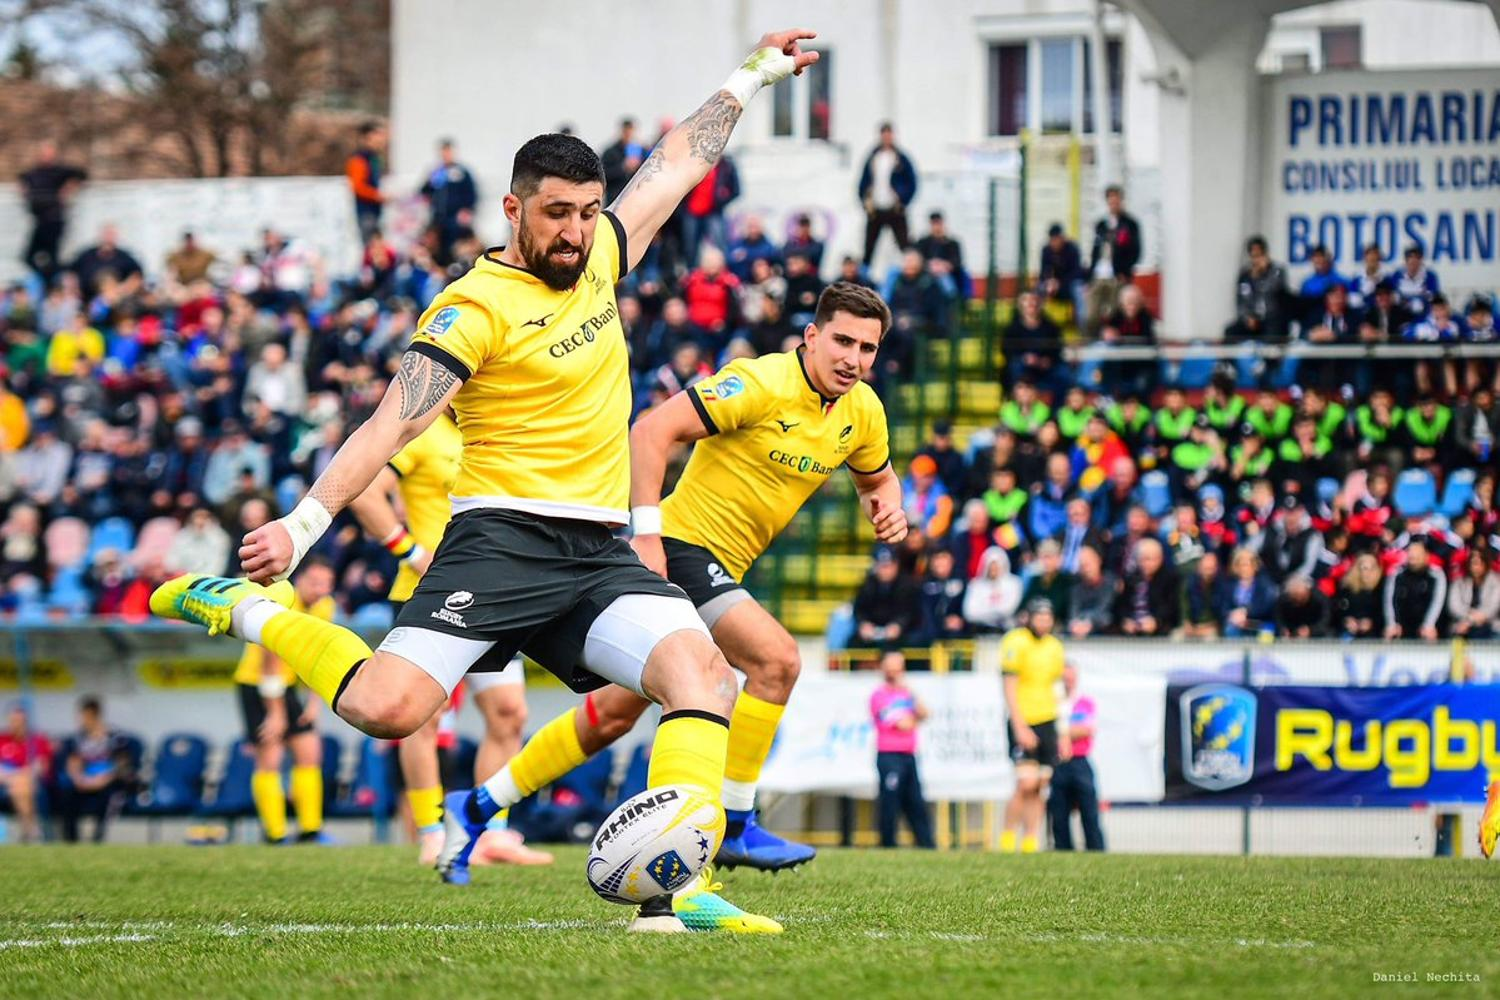 Rugby Europe Championship 2019: Romania v Russia